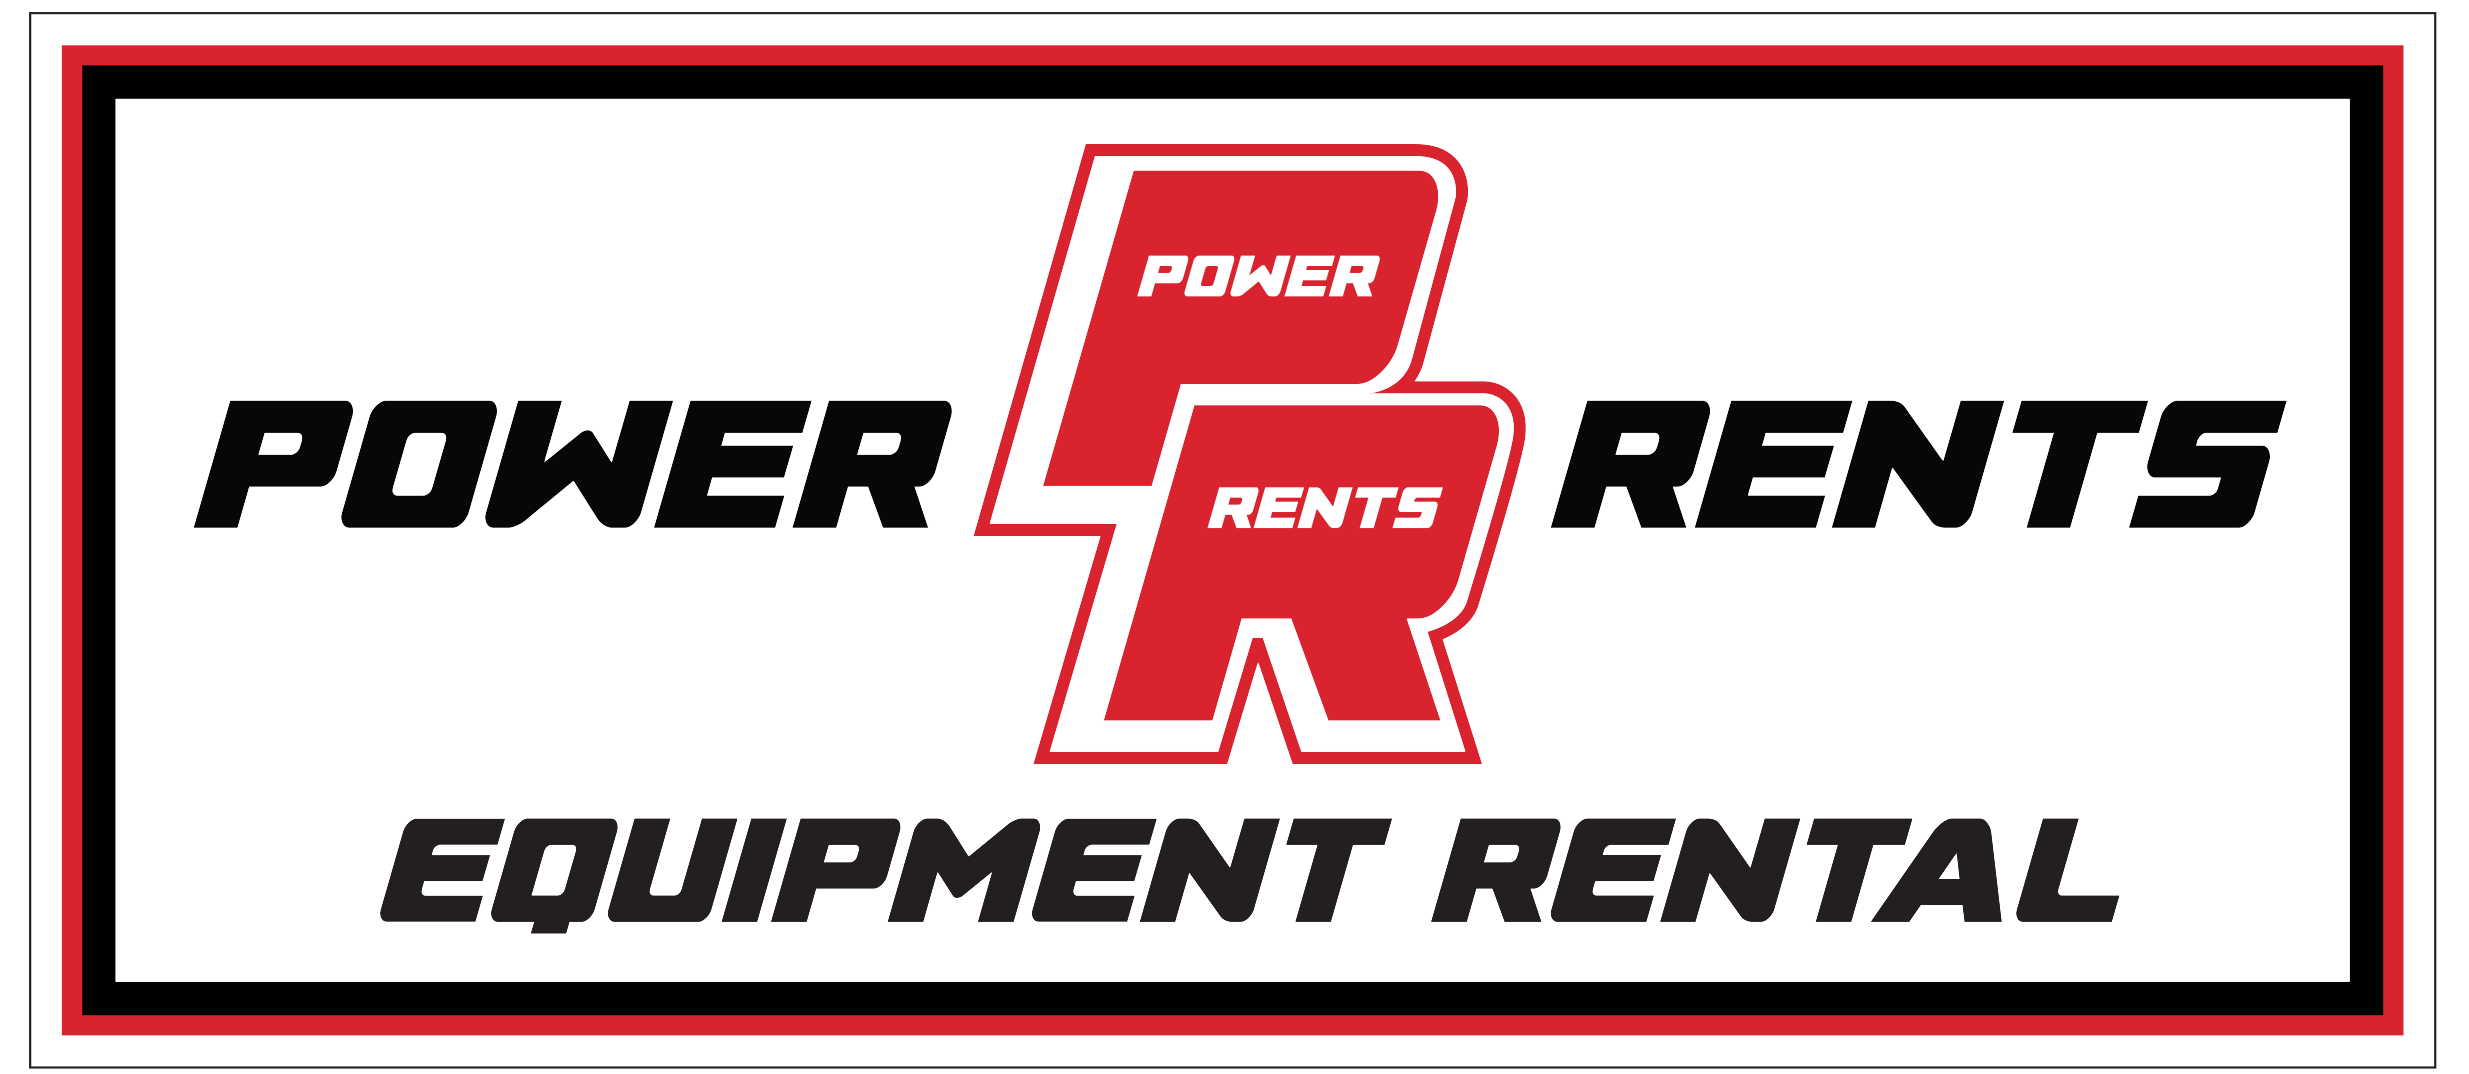 Home of Power Rents